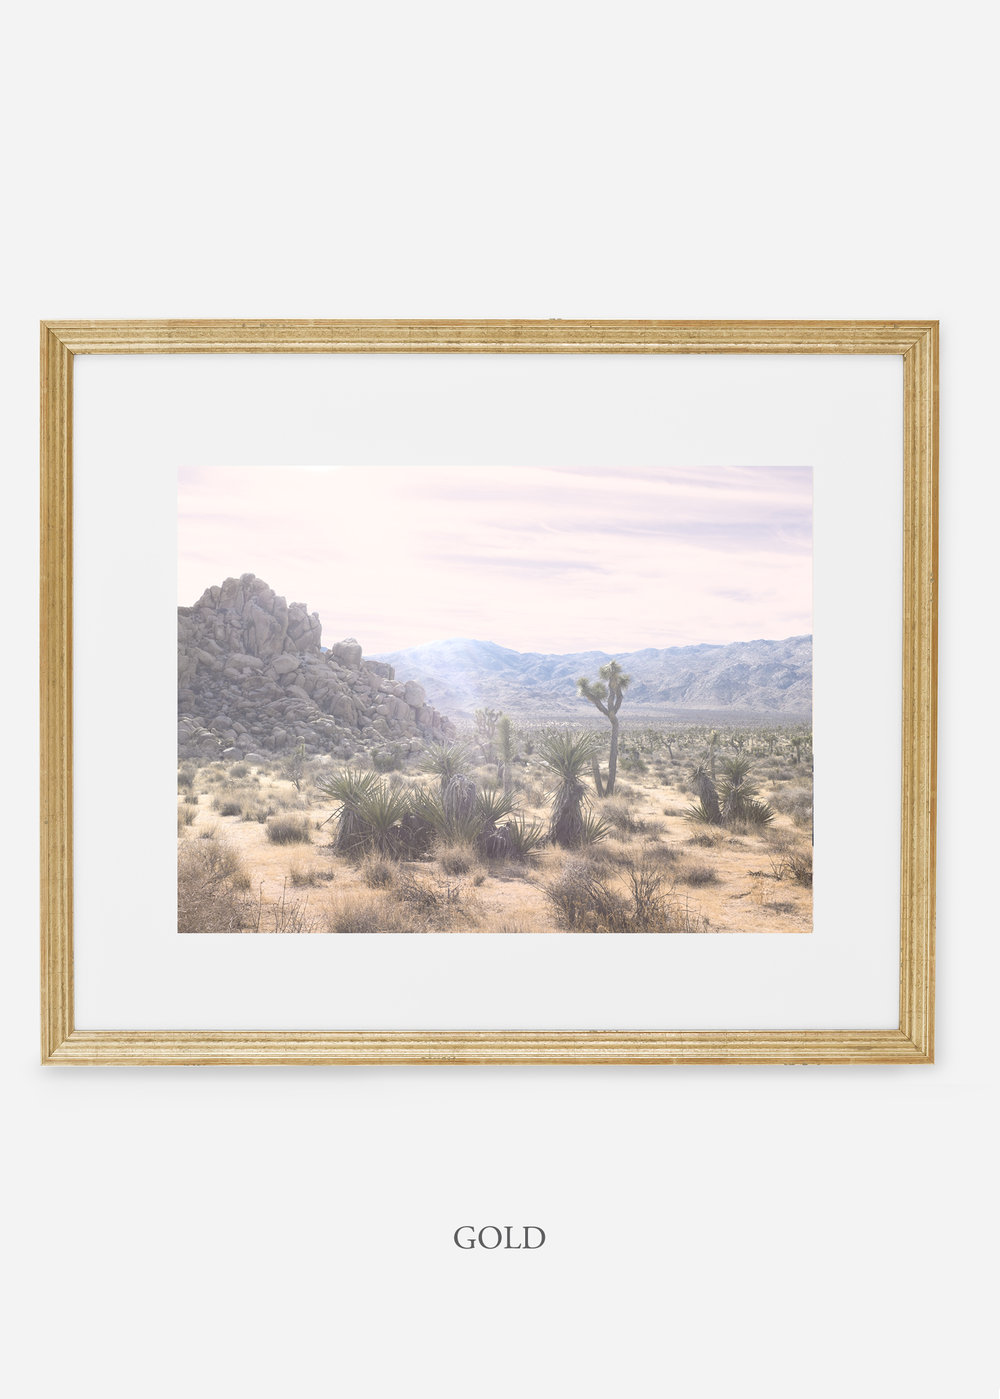 WilderCalifornia_goldframe_JoshuaTree_No.9_interiordesign_prints_art.jpg